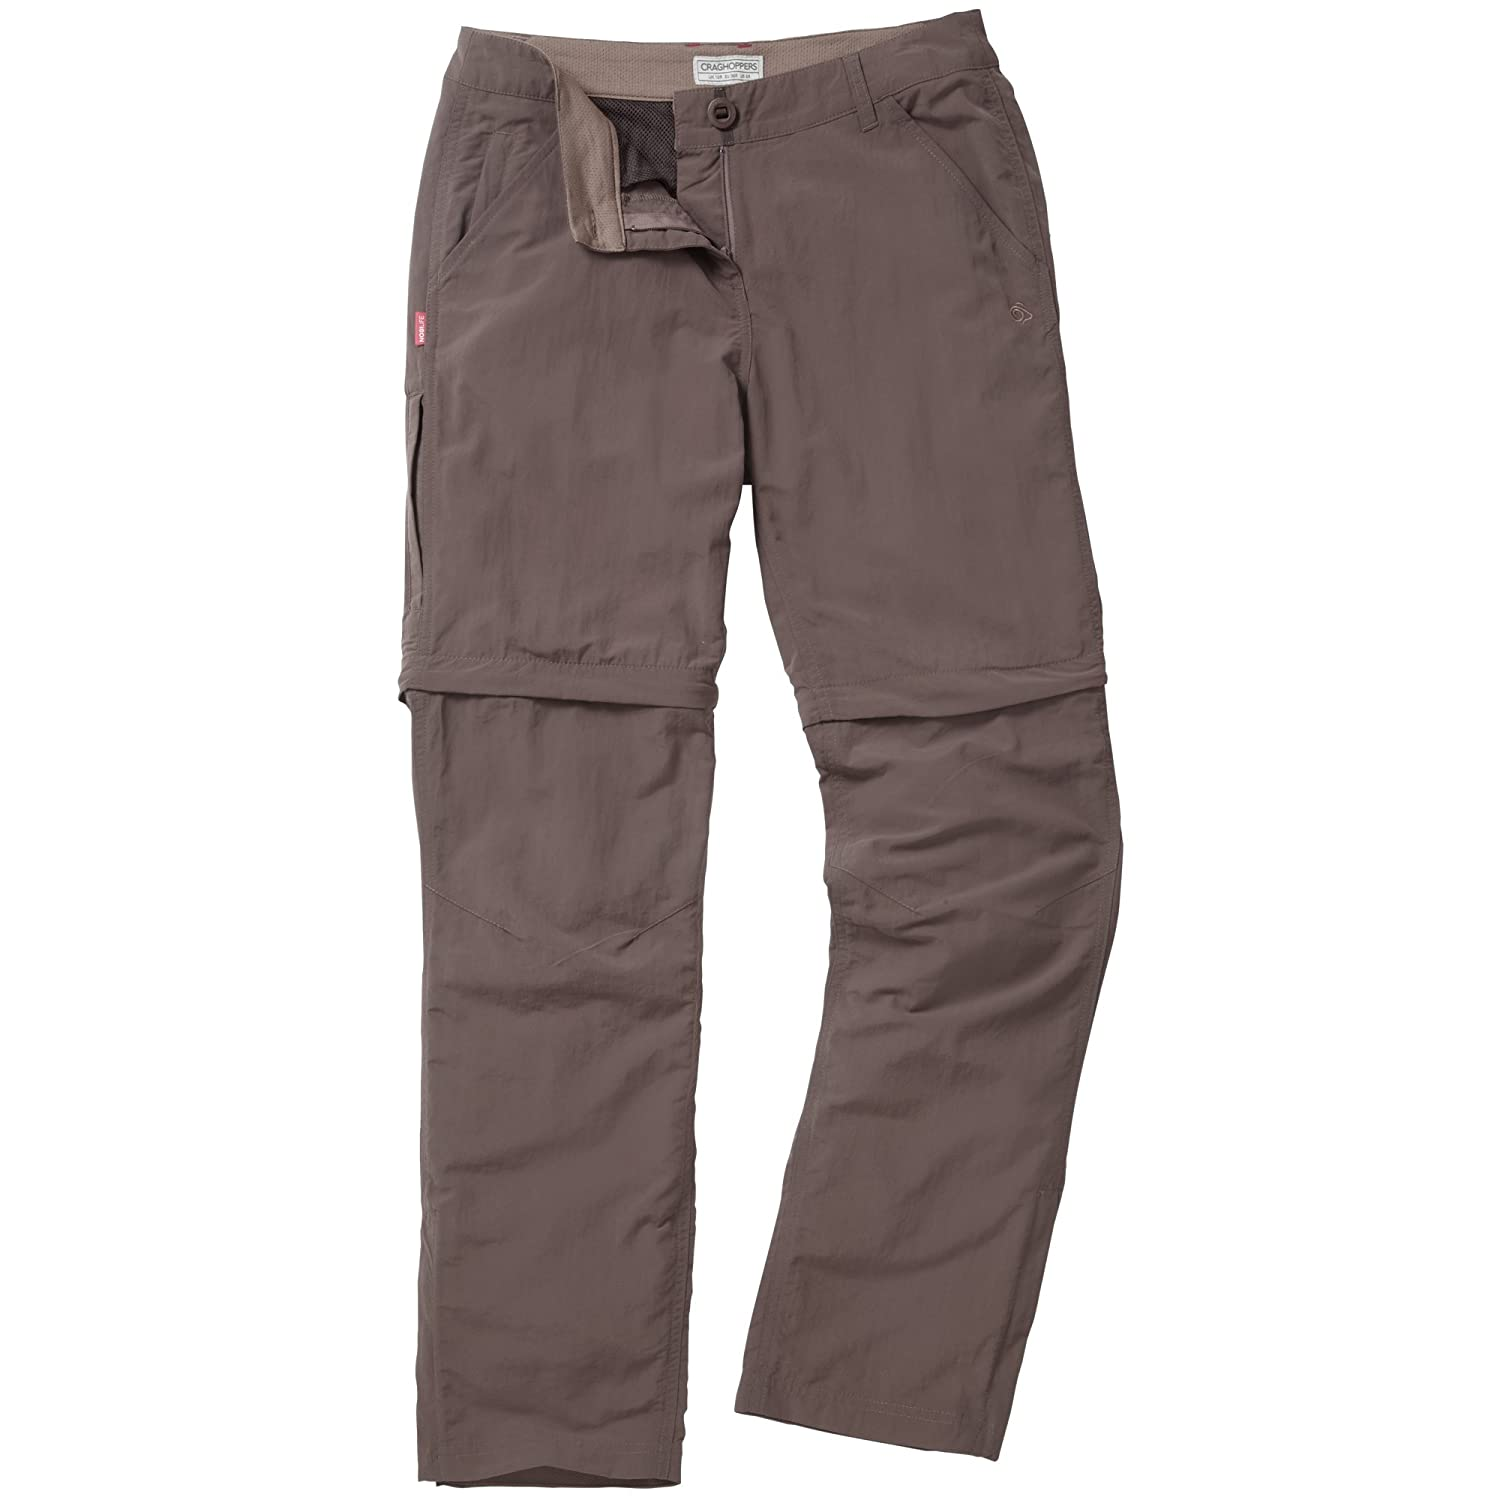 f398451410b3 Craghoppers Womens/Ladies Nosilife Insect Repellent Zip Off Trousers/Pants  at Amazon Women's Clothing store: